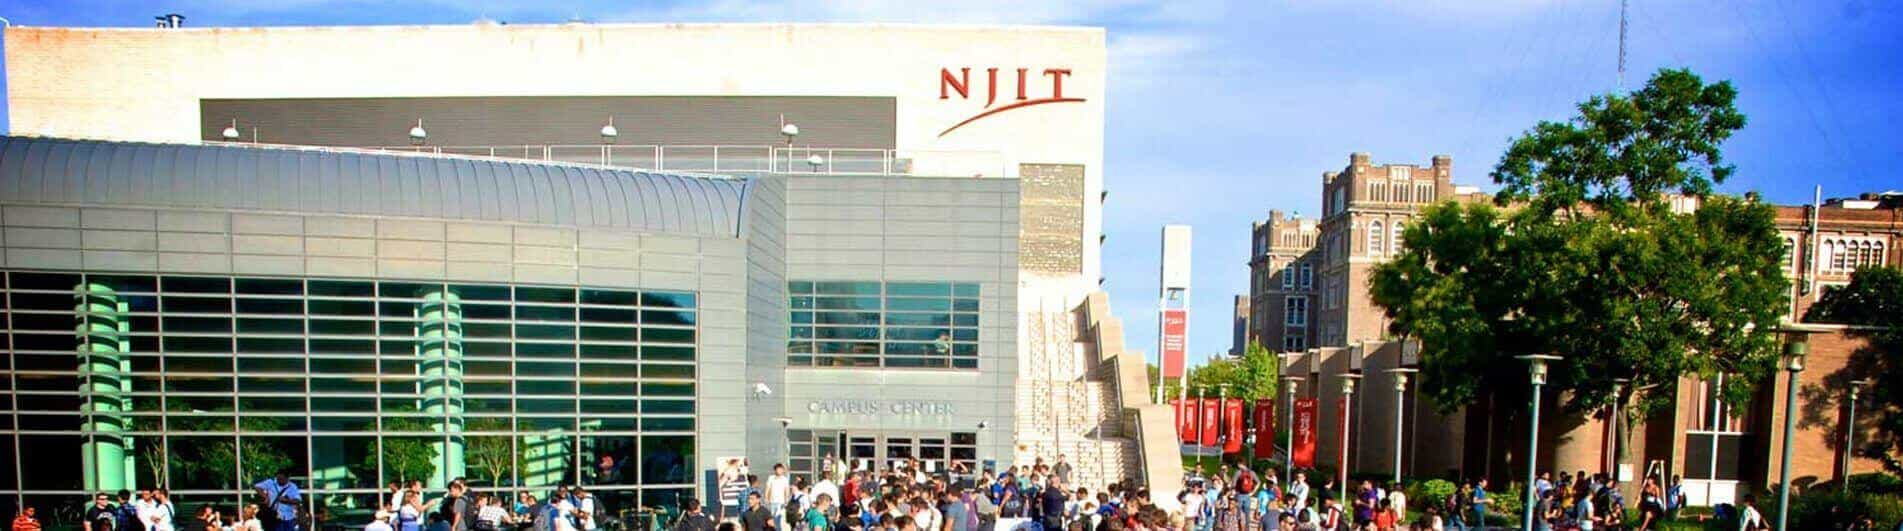 Njit Banner